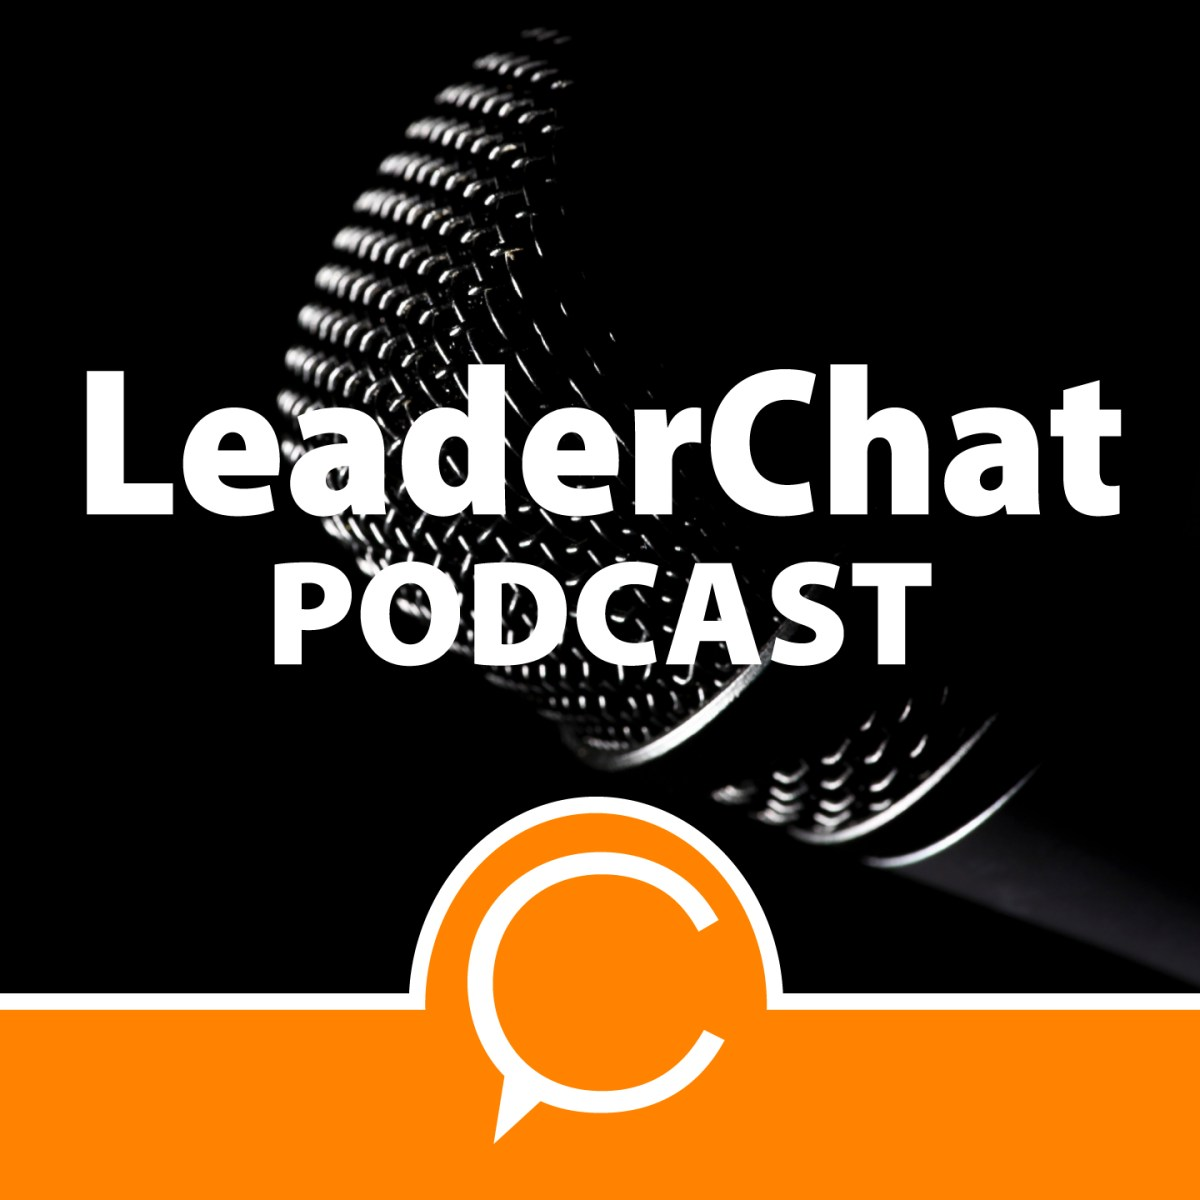 Blanchard LeaderChat Podcast